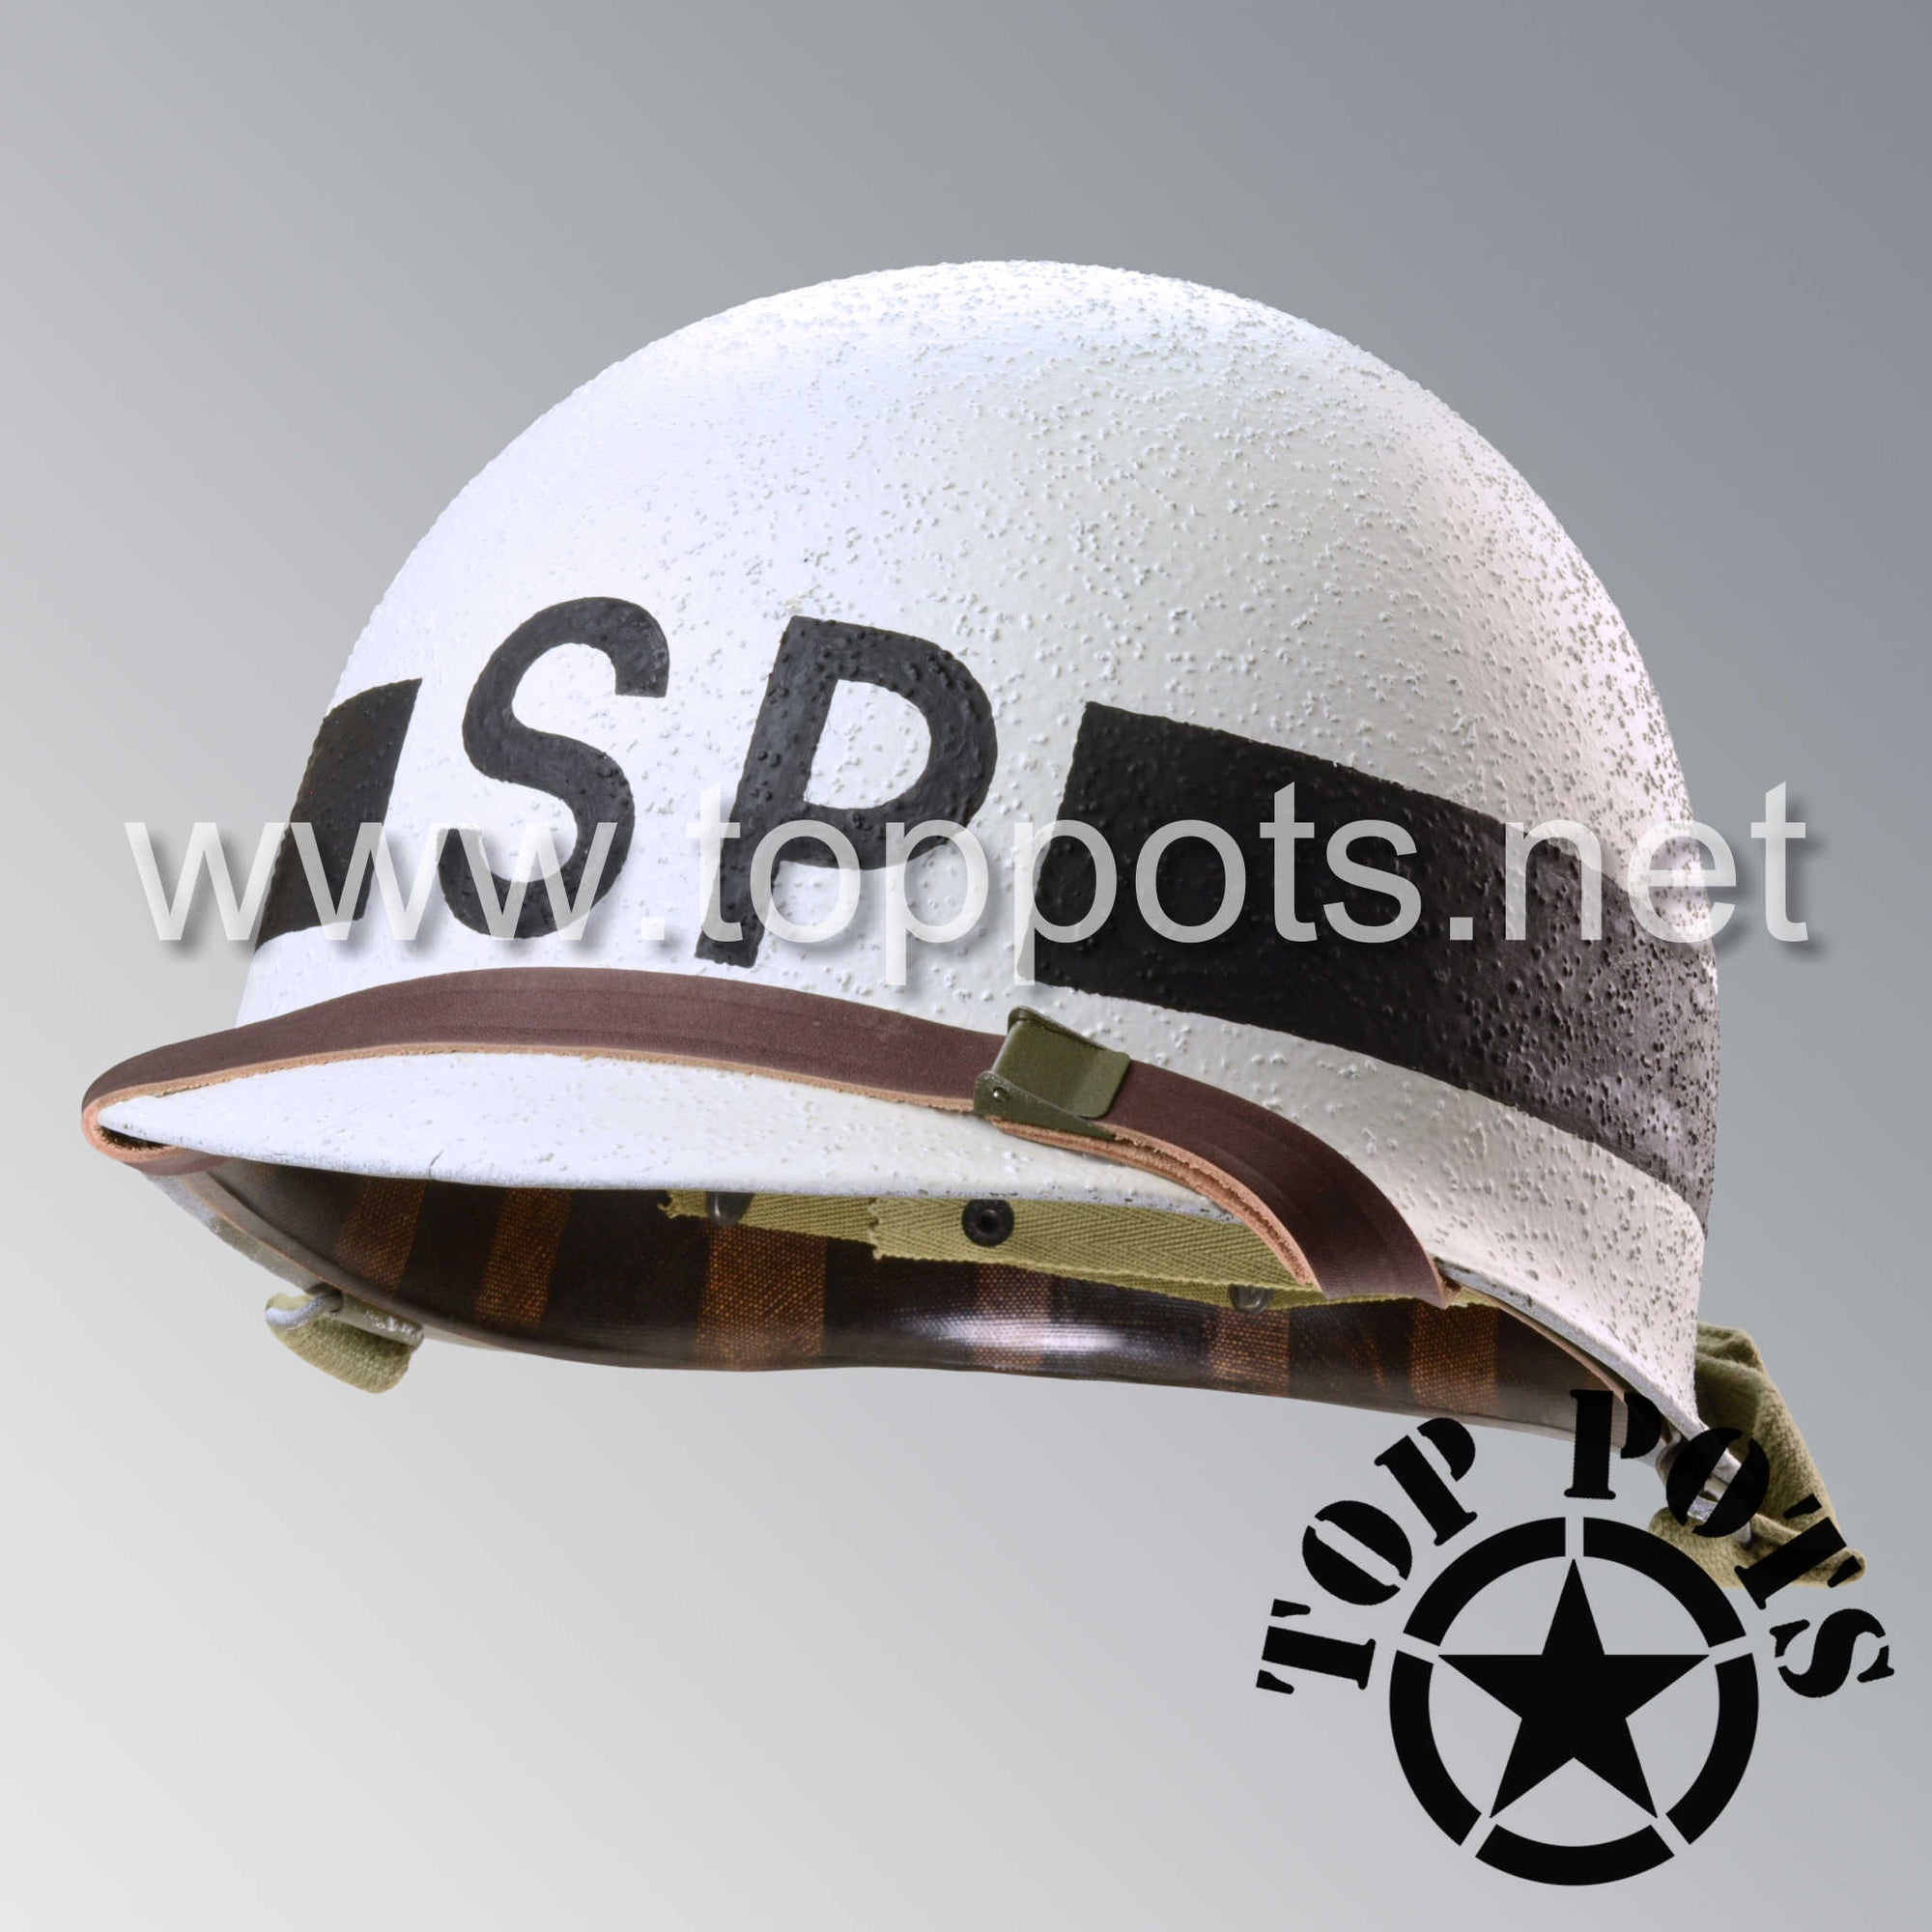 Image 1 of WWII US Navy Restored Original M1 Infantry Helmet Swivel Bale Shell and Liner with Shore Patrol Emblem